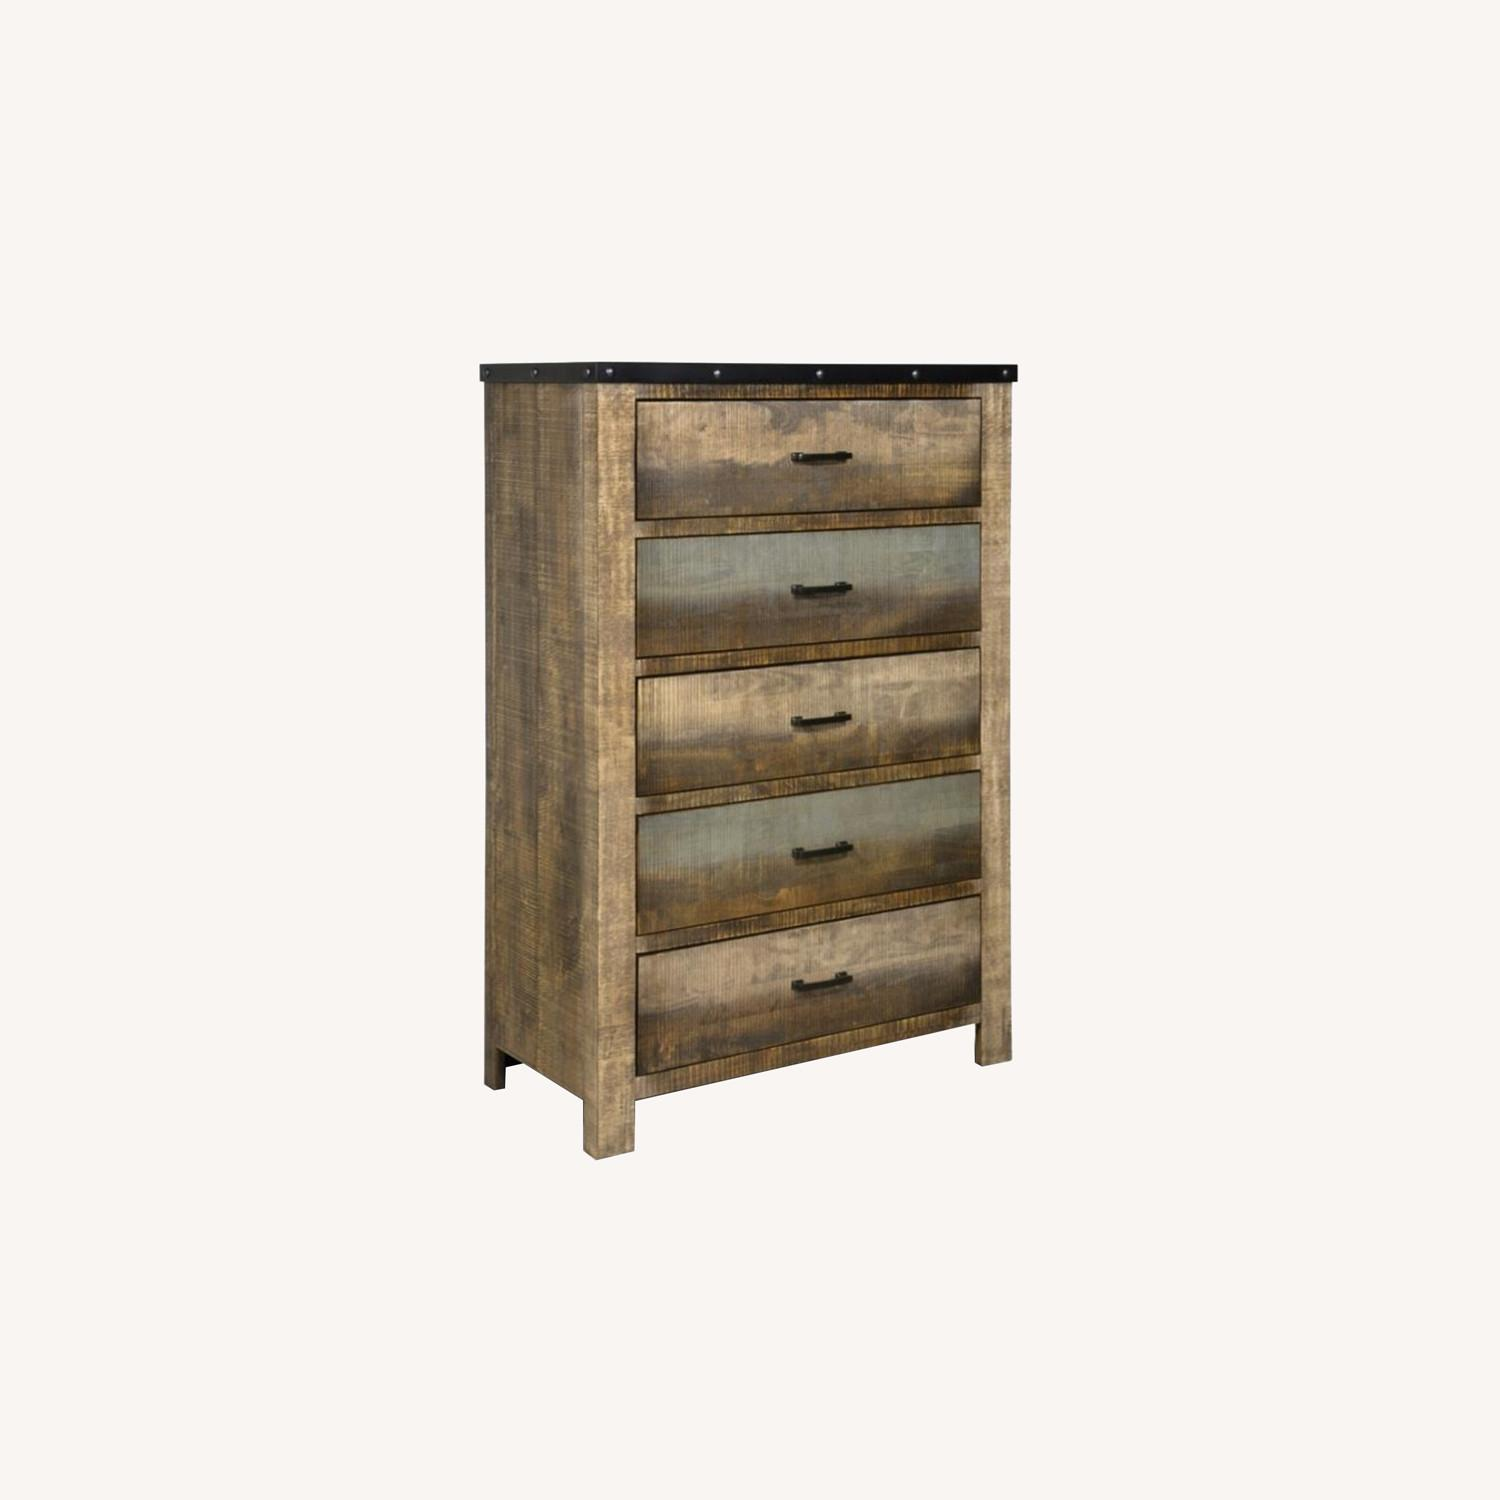 Chest In Antique Multi-Color Wood Finish - image-5